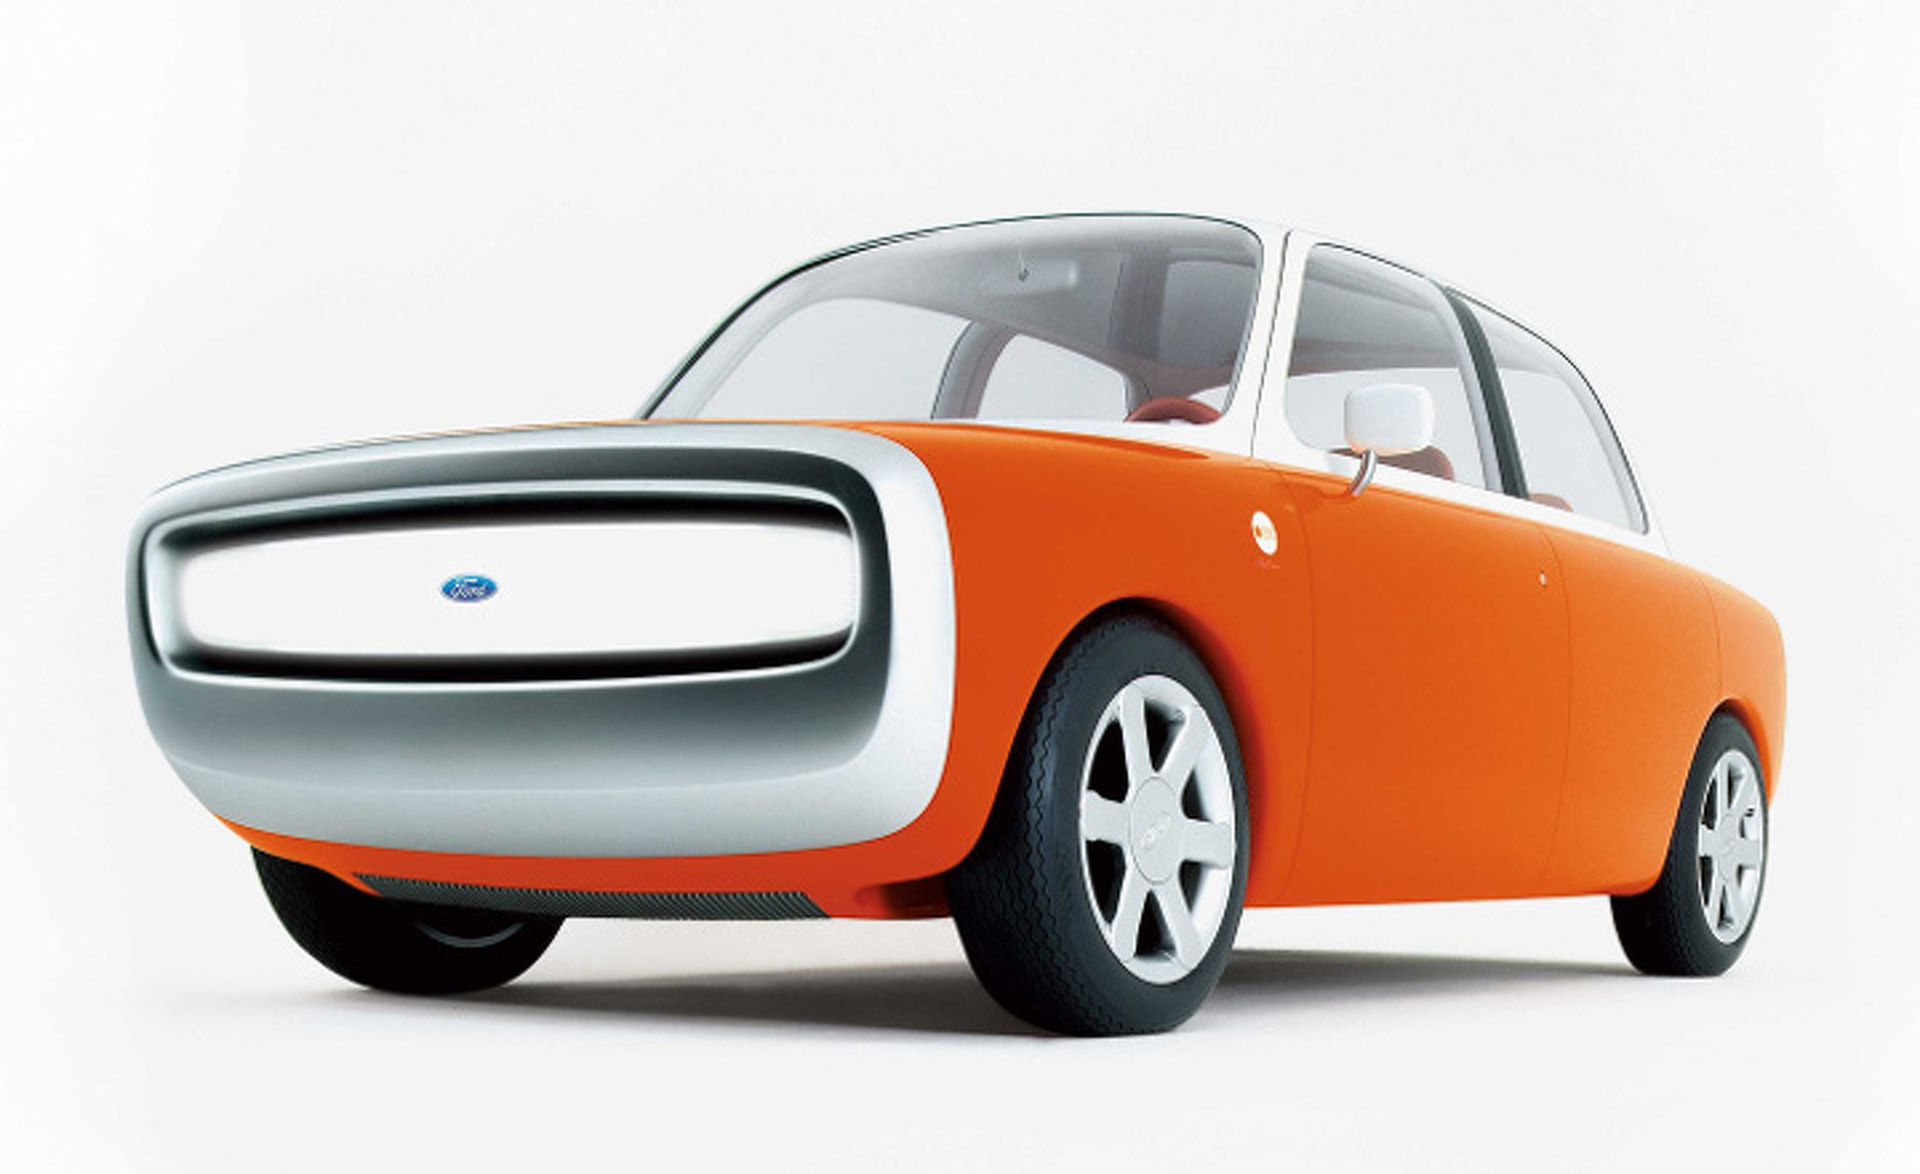 How Apple Designer Jony Ive Will Influence Future Car Design